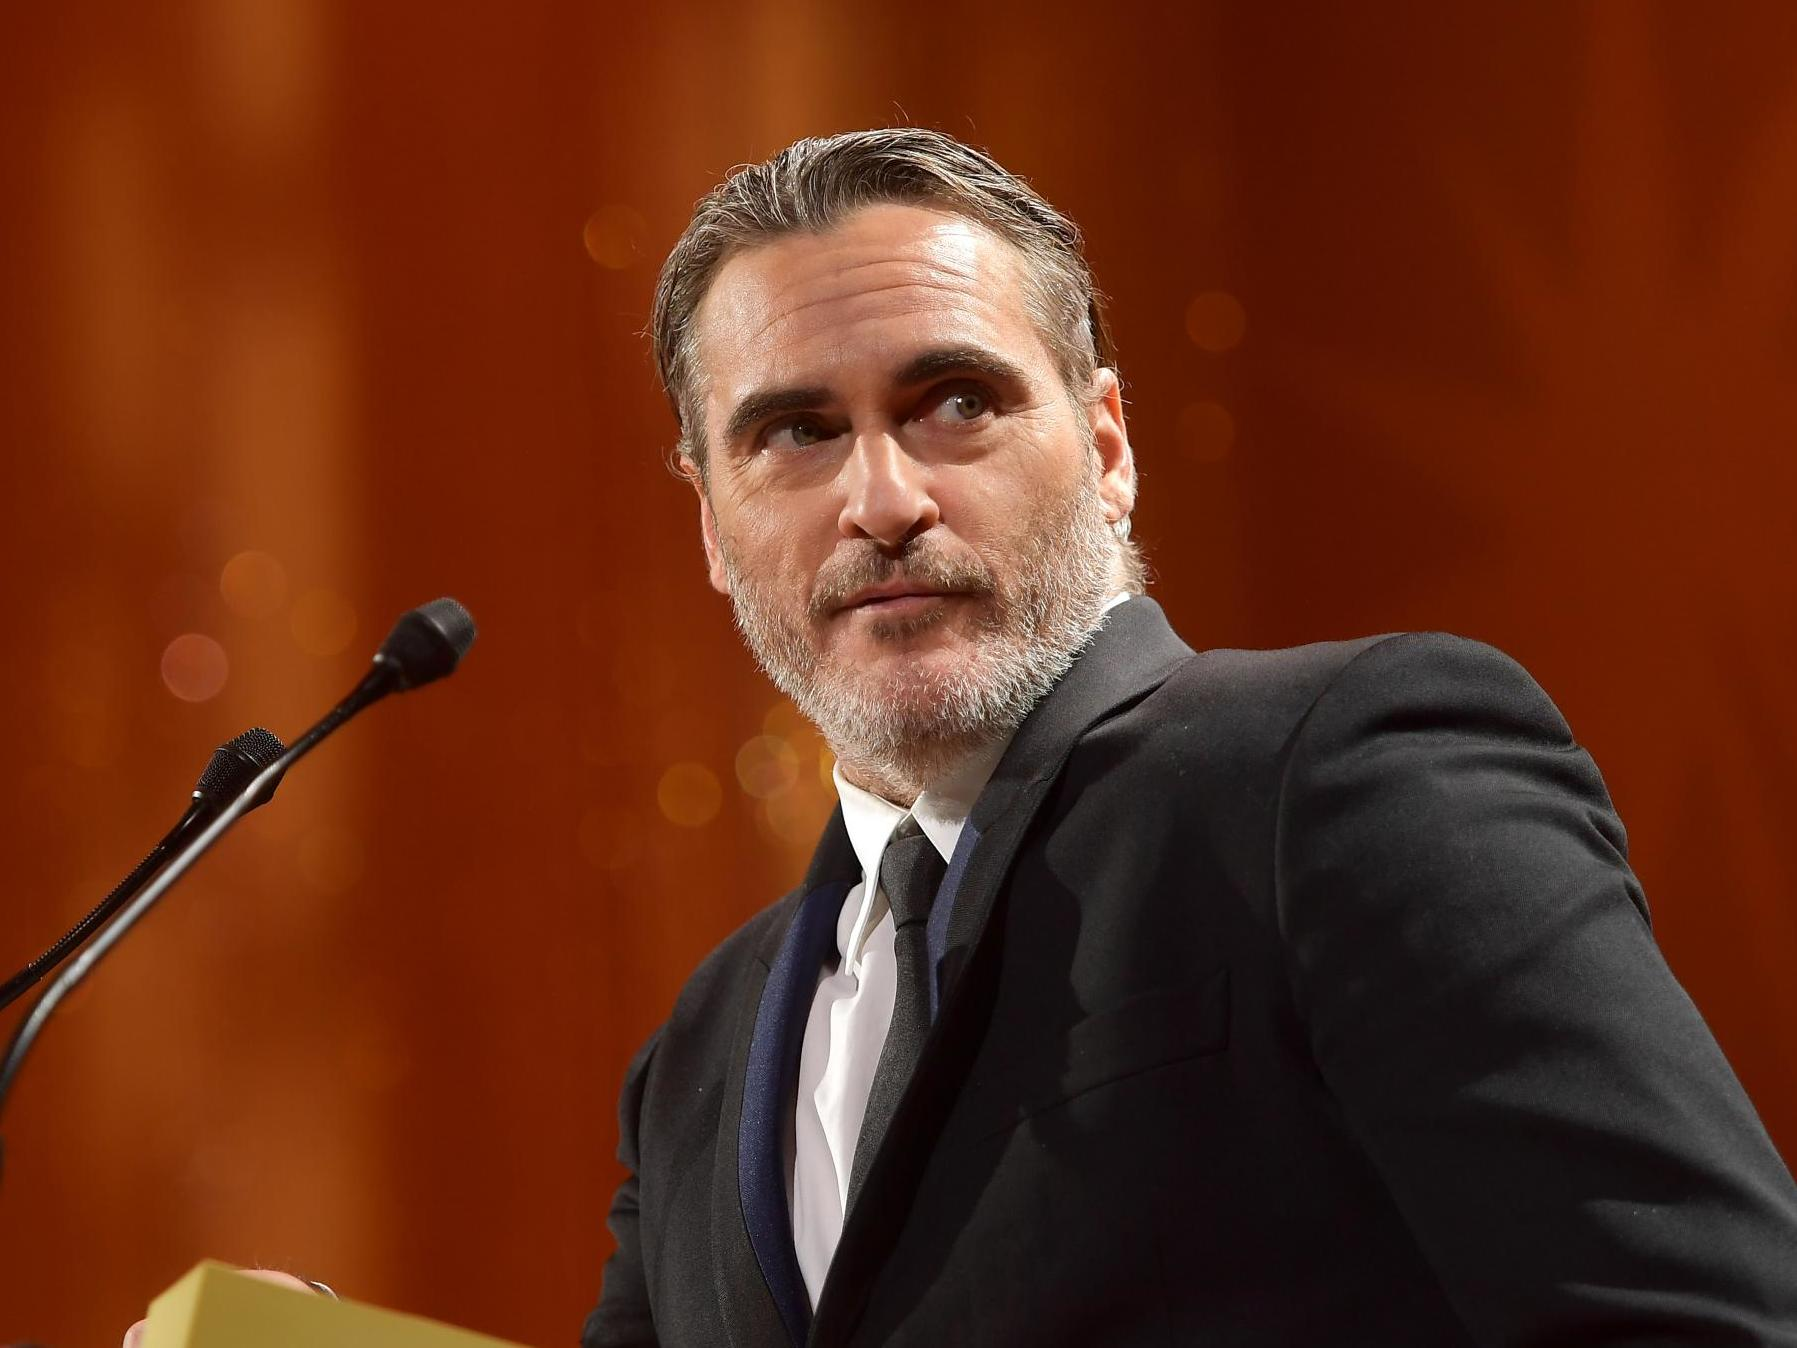 Joaquin Phoenix makes rare mention of late brother River during emotional speech at TIFF